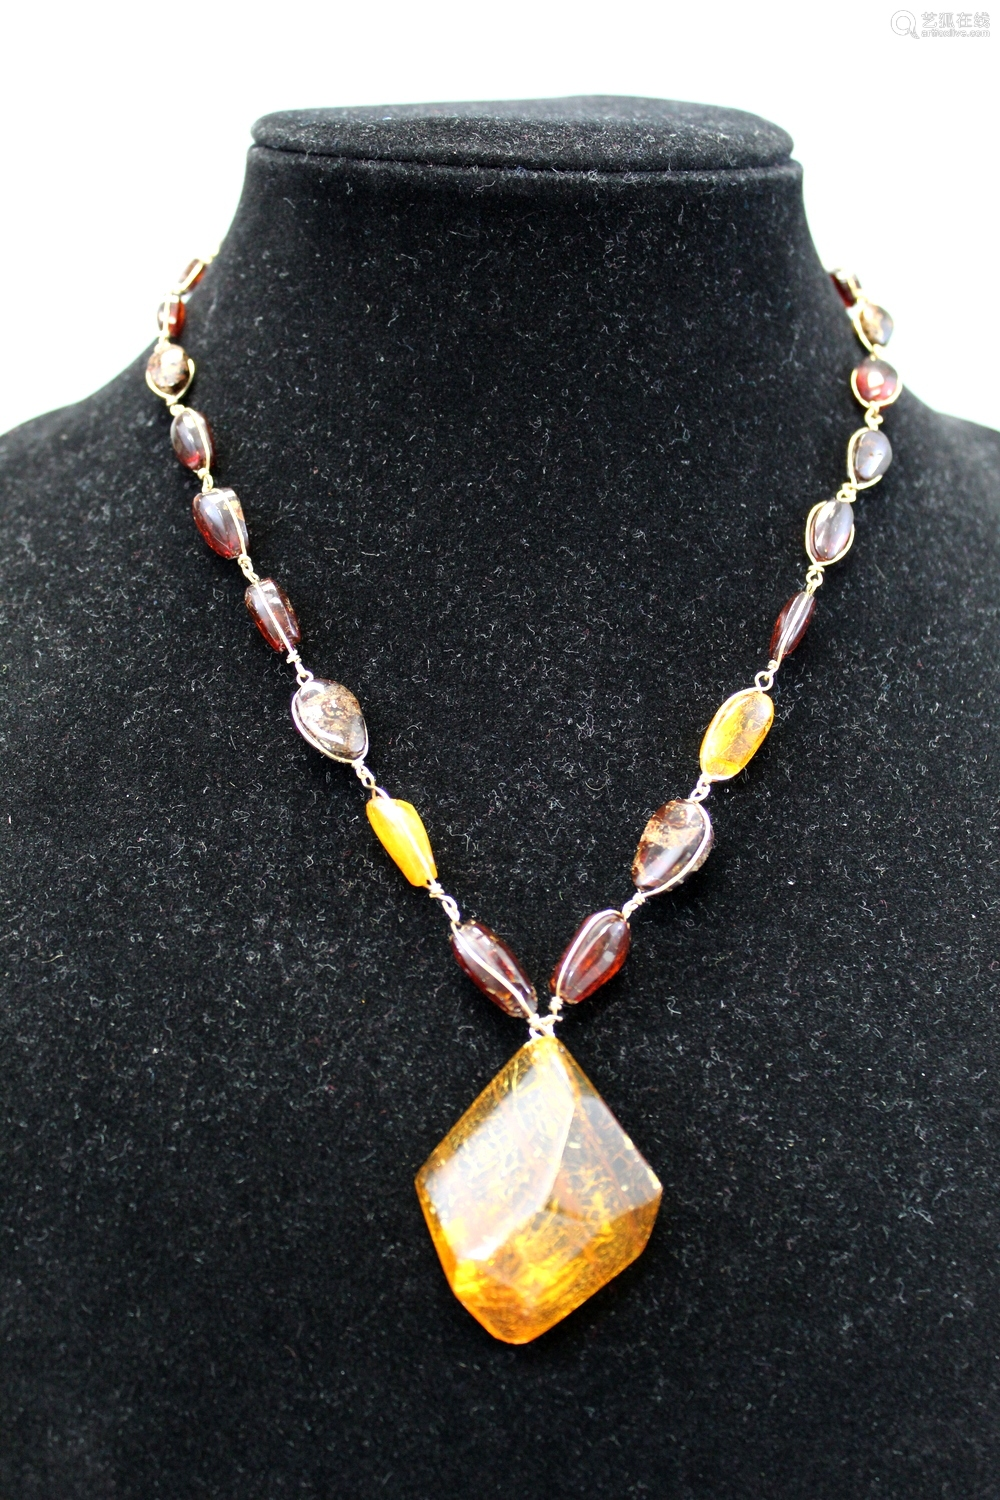 Natural amber necklace with big natural amber pendant.